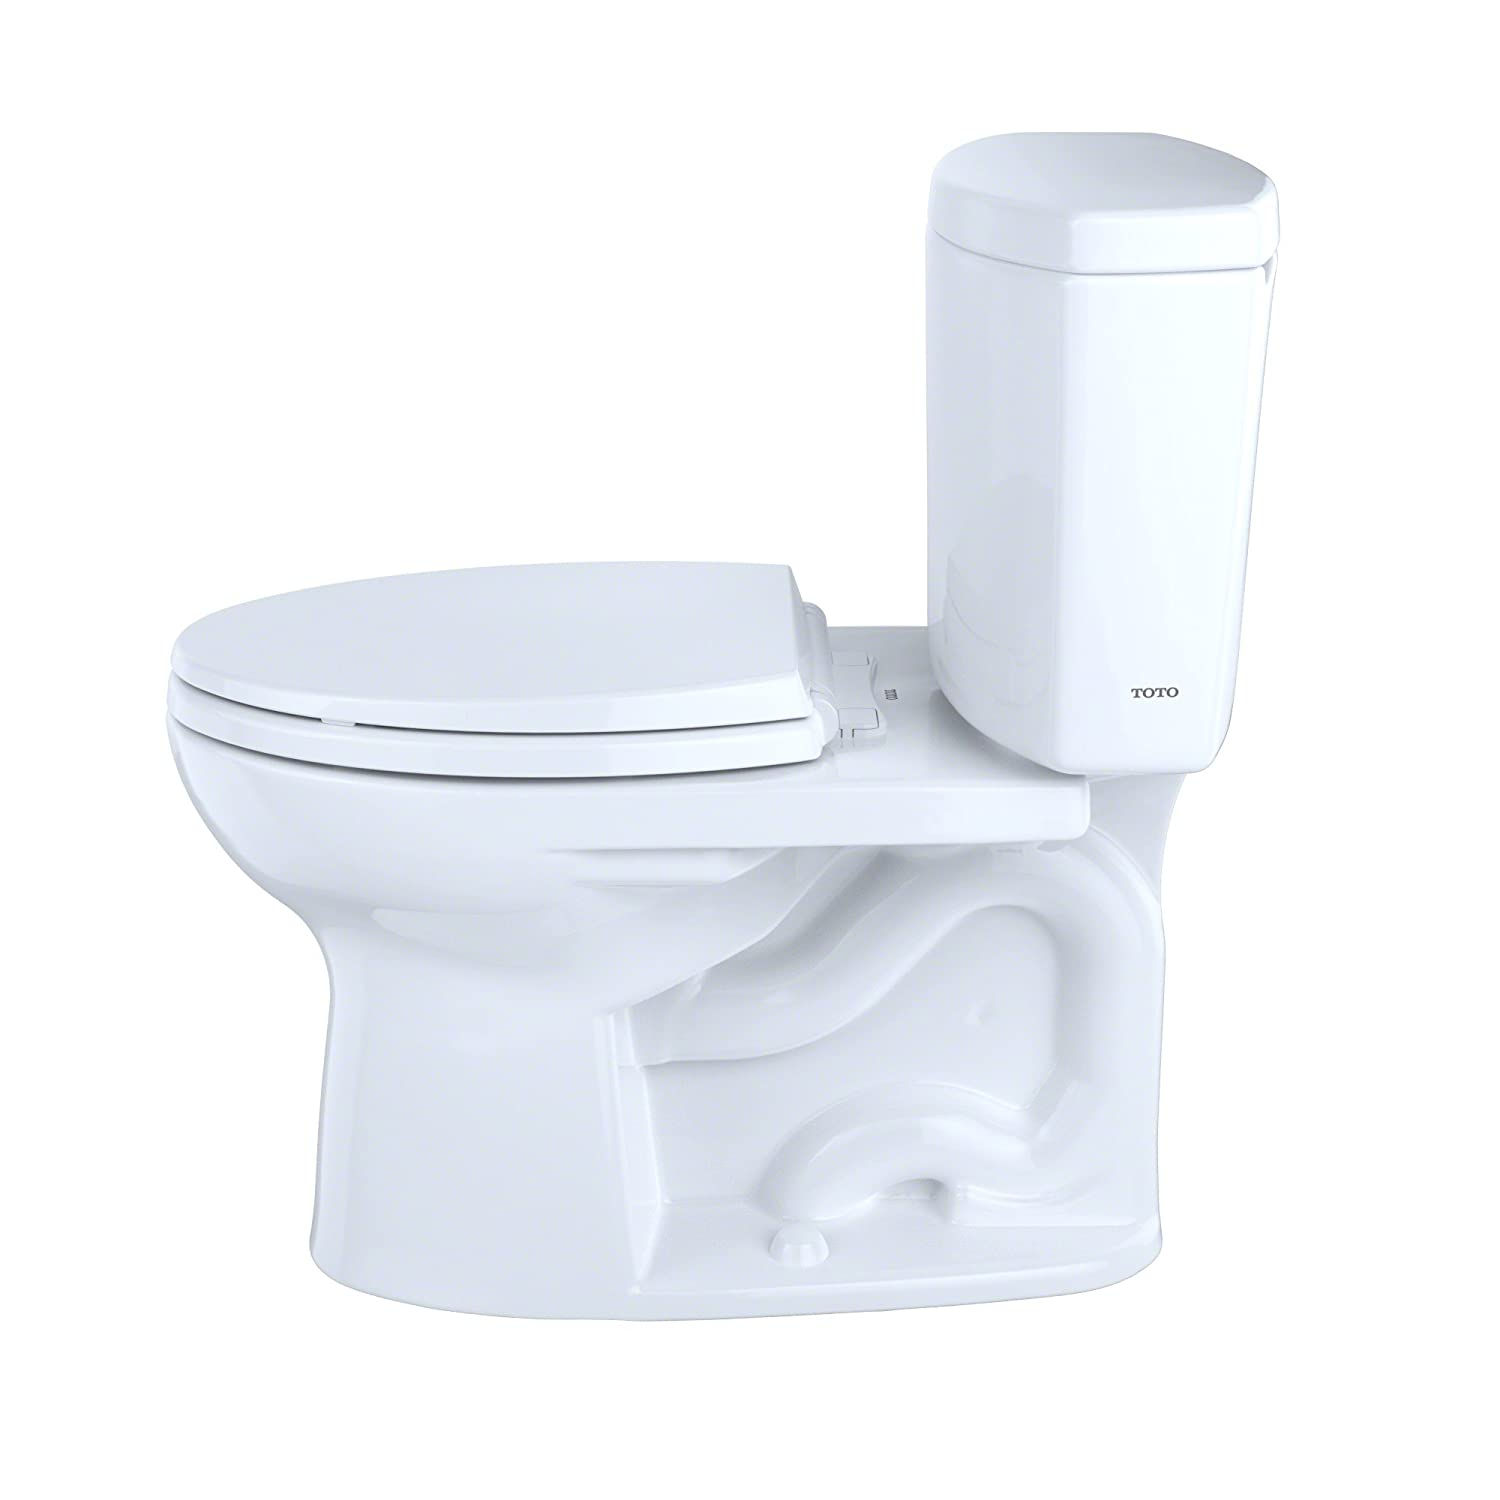 Best Flushing Toilet Reviews(New Data) | Top 8 Most Powerful Toilets ...